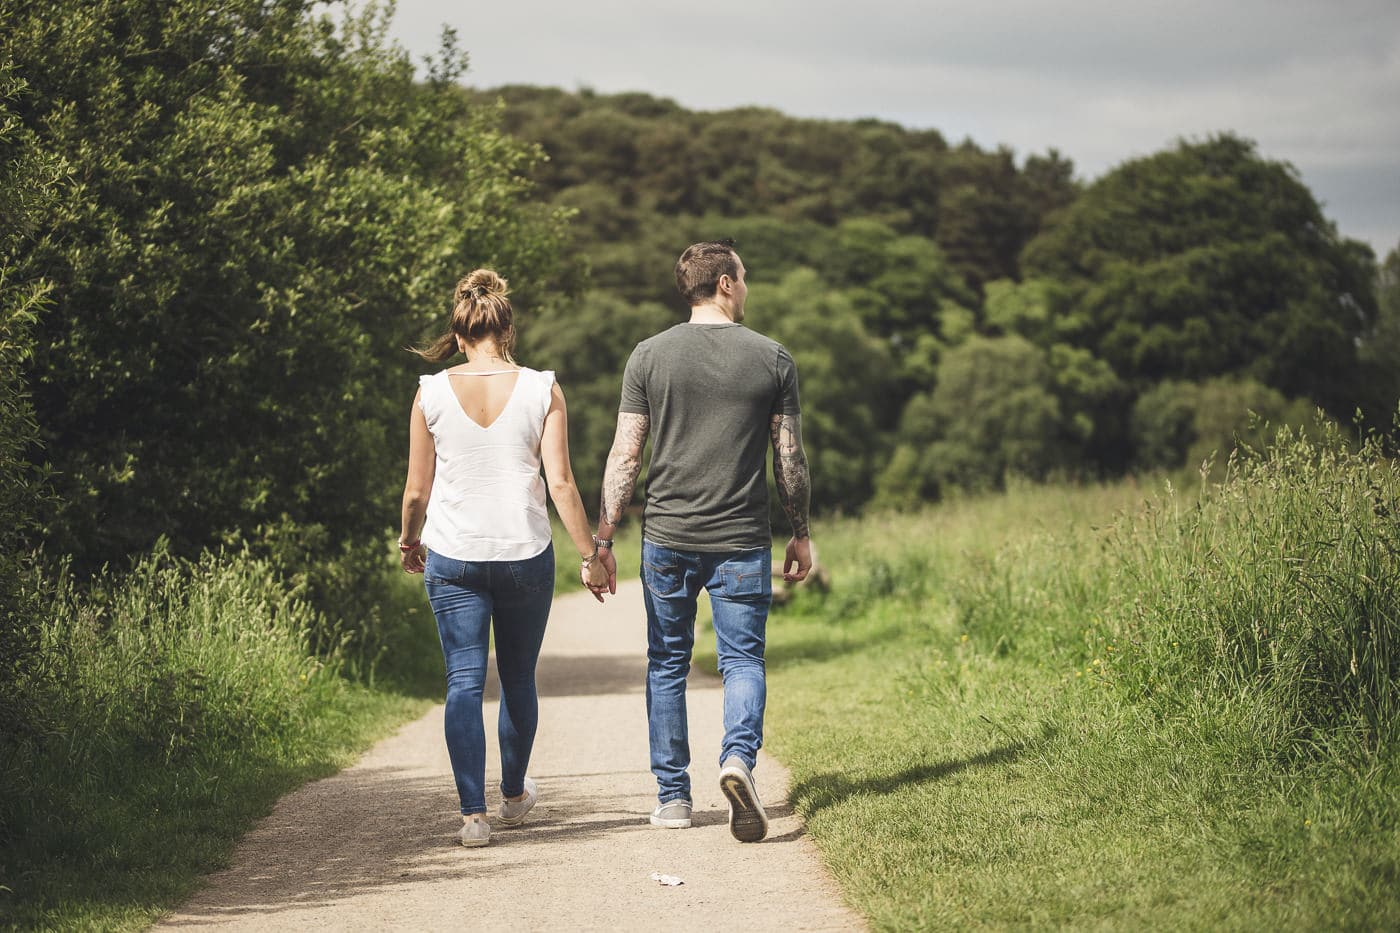 Couple walking down a path in cumbria along side the lake side